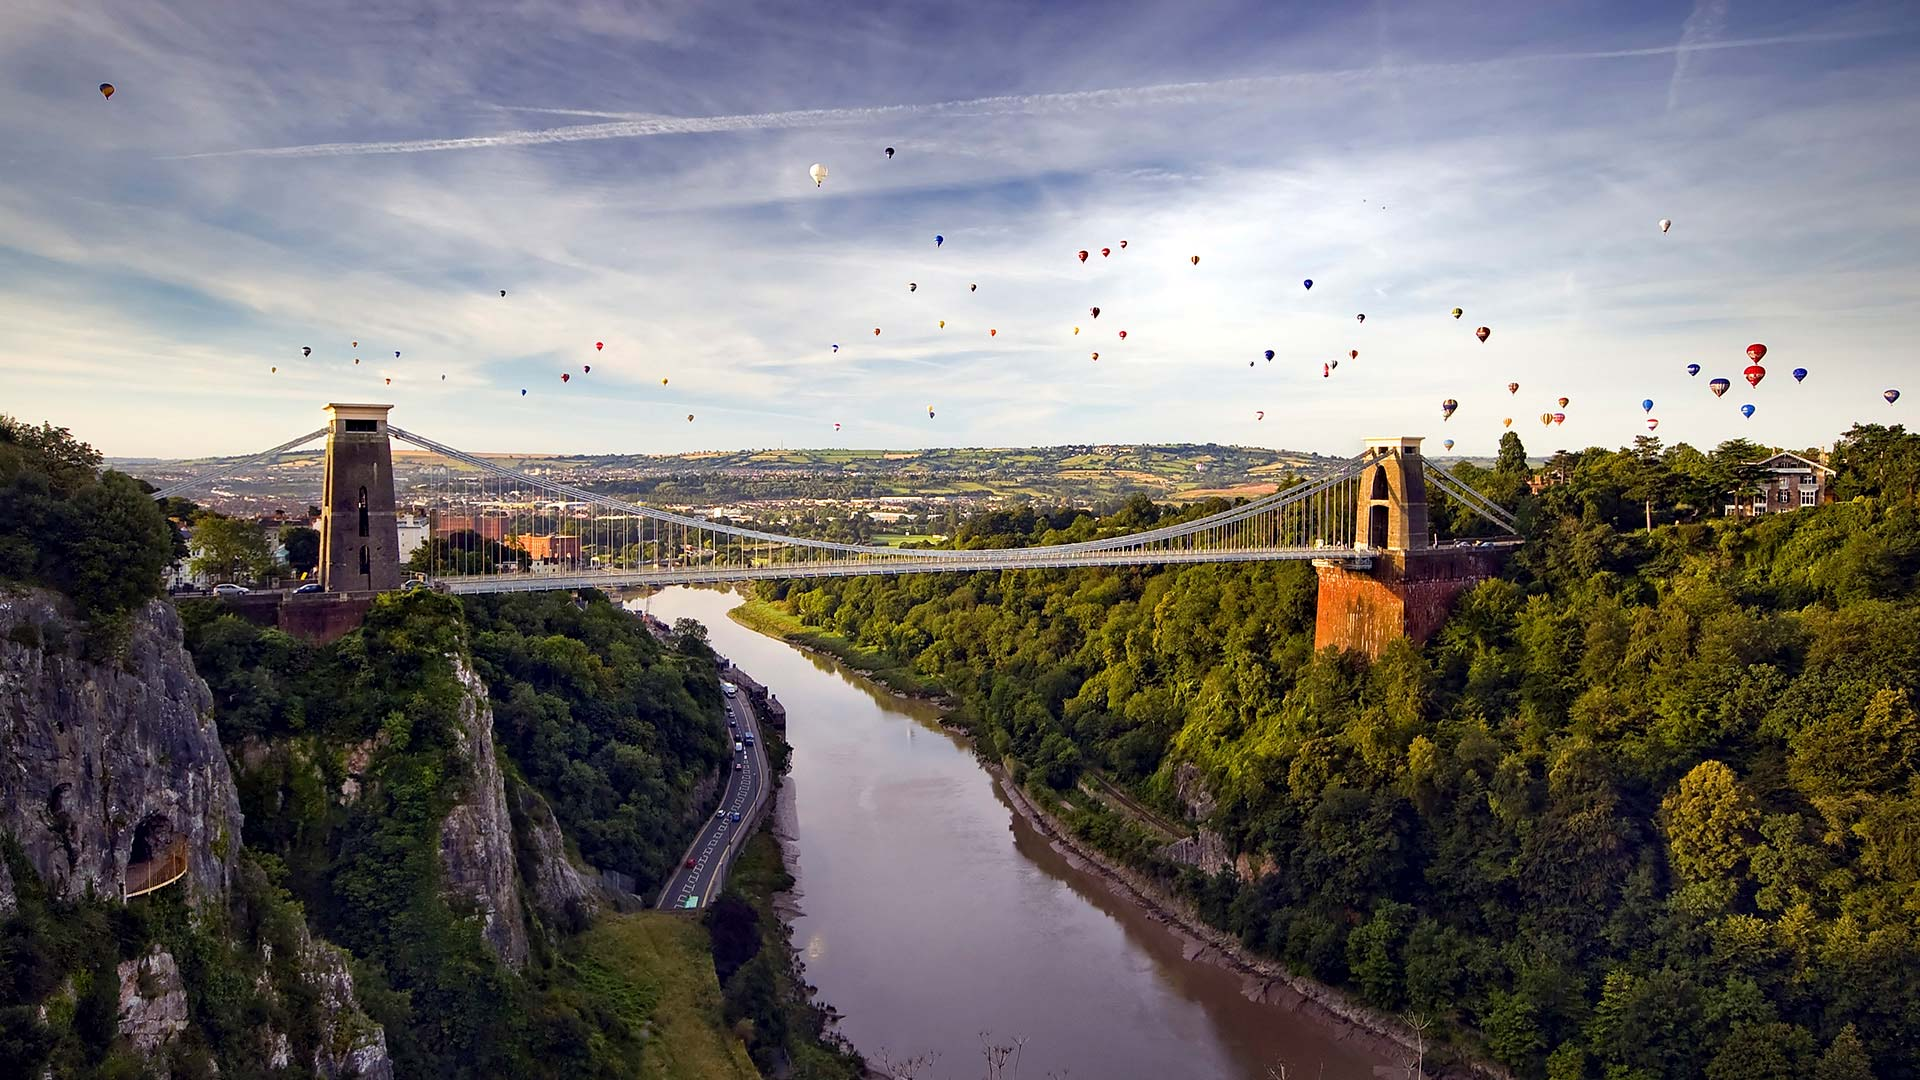 Panorama to illustrate dating in bristol